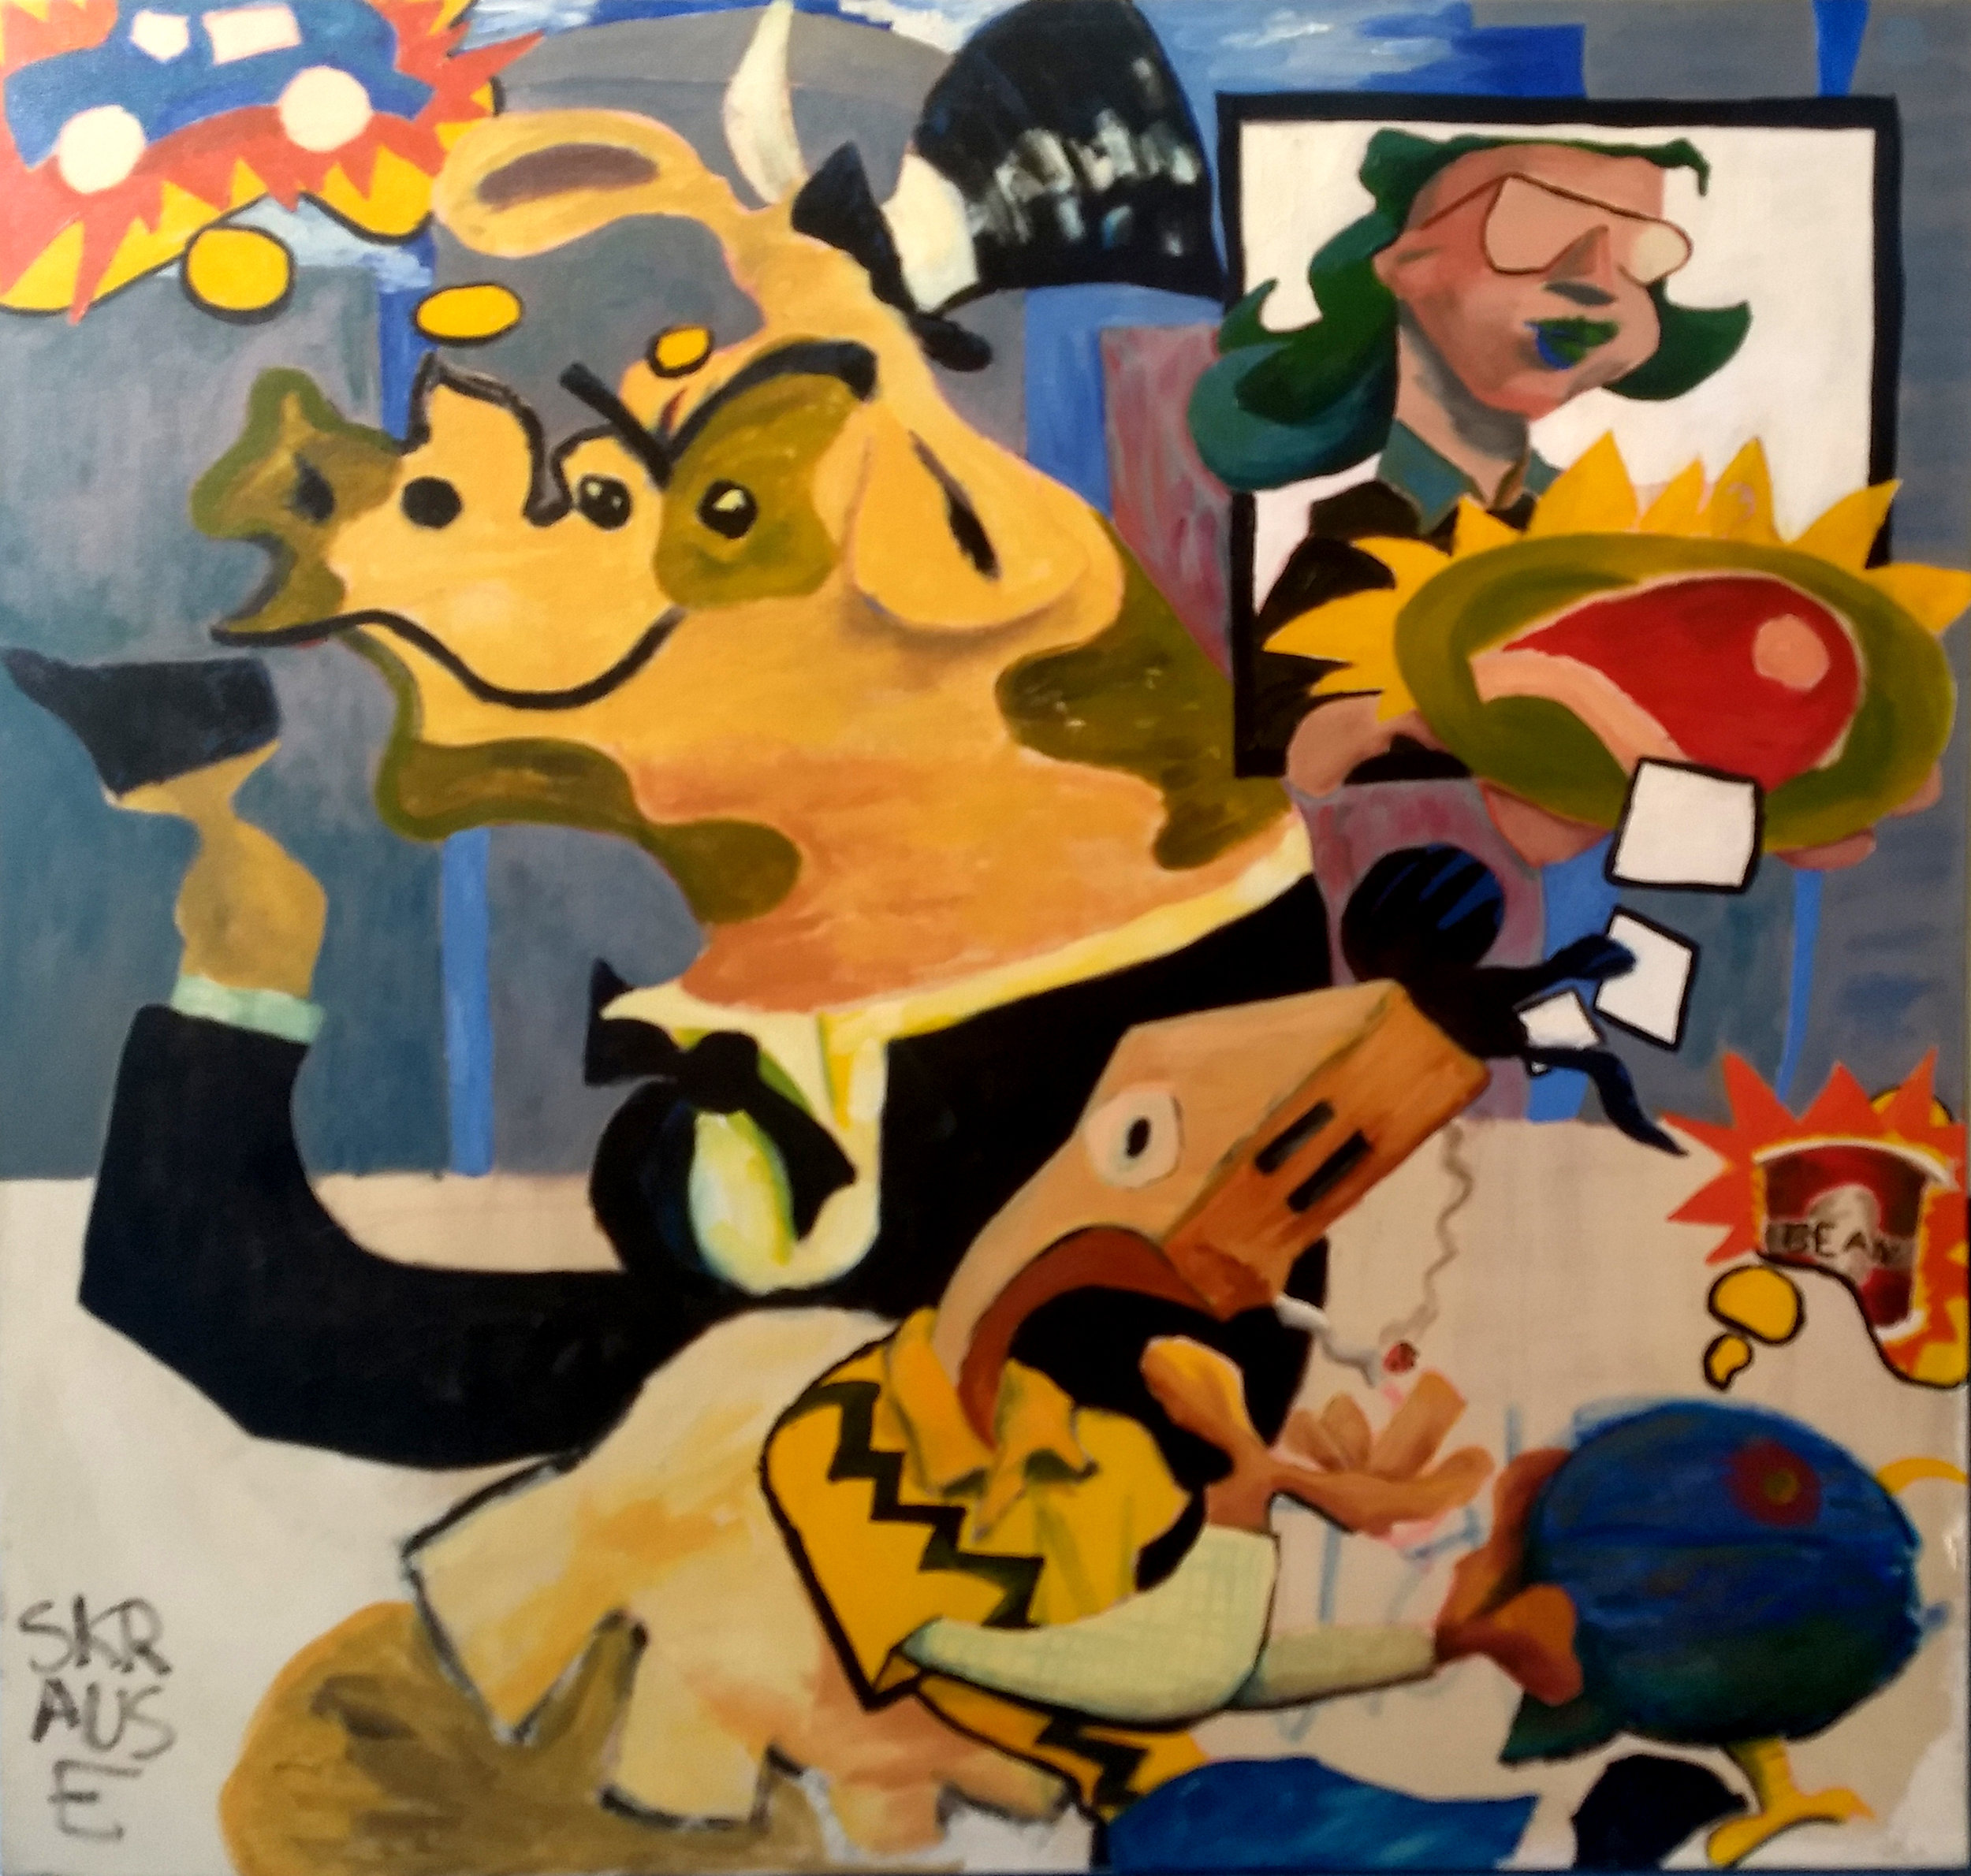 oil on canvas, Monty Blanc passes the Creampuss Cow in the Street, Carries Birdie. This painting ushered The Skrauss out of college and into the life of a professional artist.  Note that Skrauss' studio mate, Natalie Ratha signed the work while a blank canvas and The Skrauss incorporated her signature into the final work,